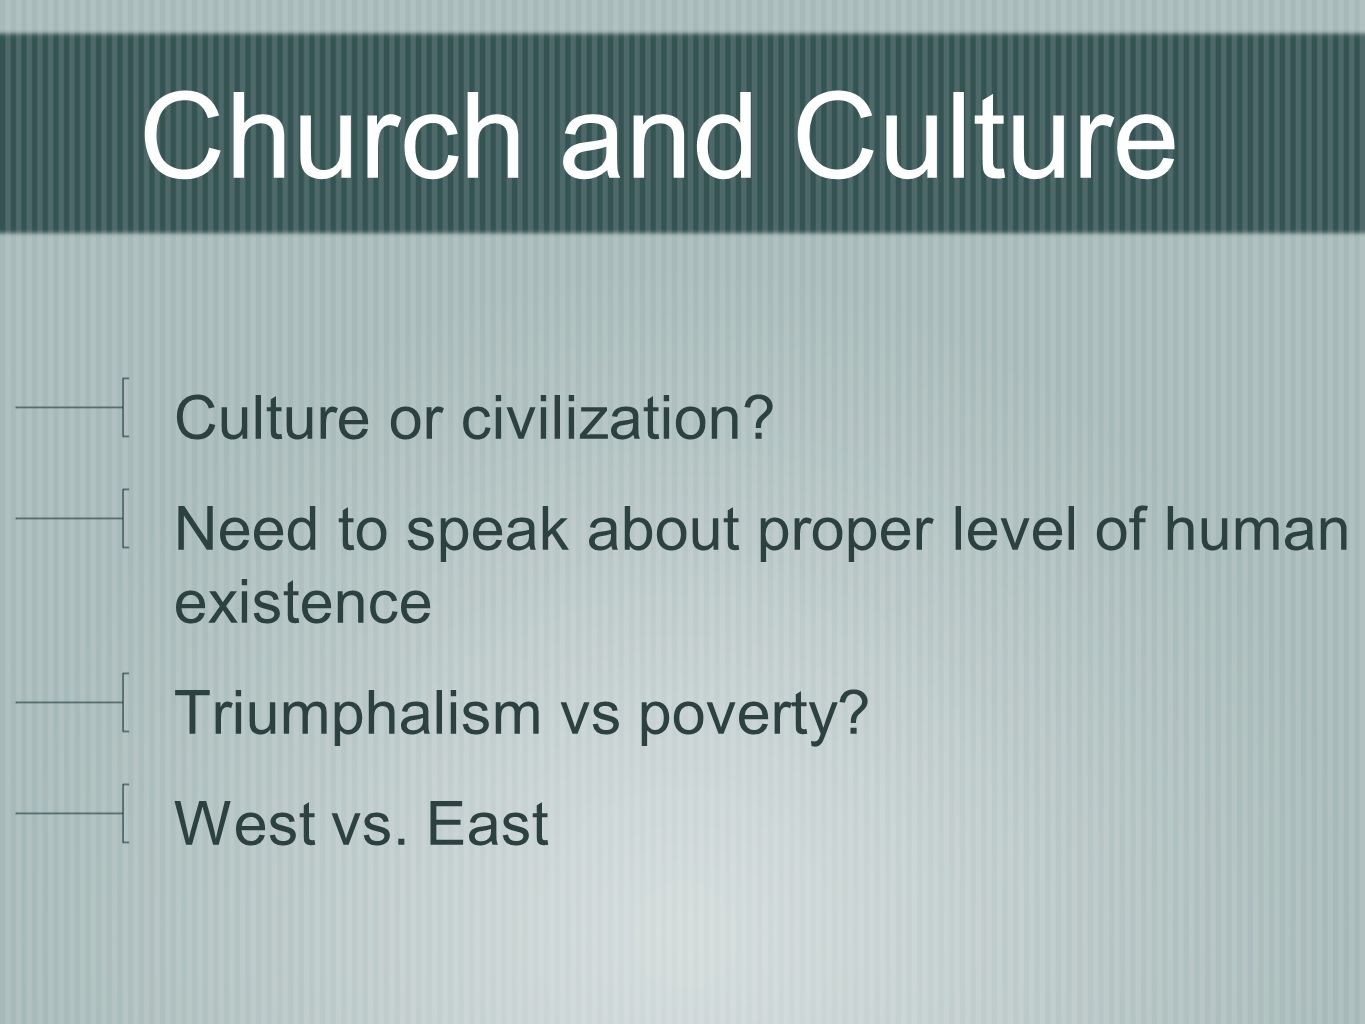 Church and Culture Culture or civilization? Need to speak about proper level of human existence Triumphalism vs poverty? West vs. East